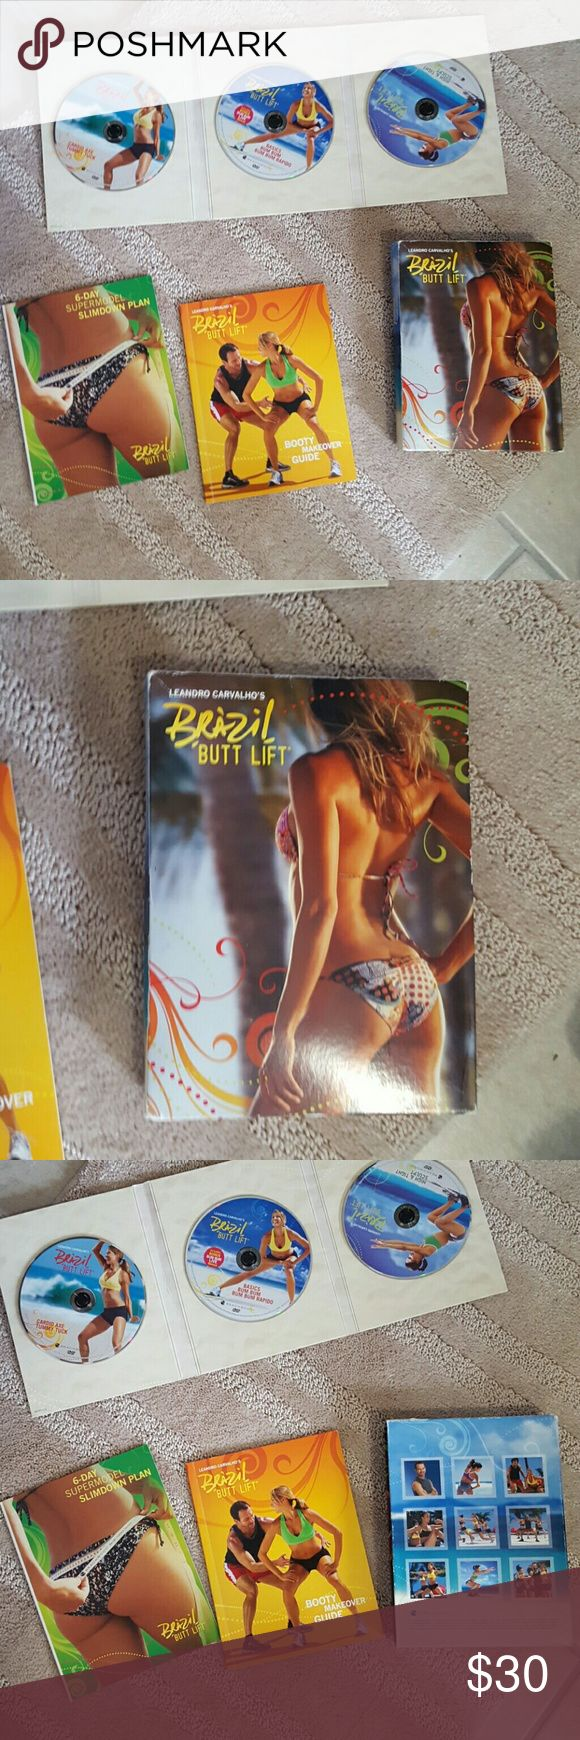 Selling this Leandro Carvalho's brazil butt lift dvd on Poshmark! My username is: miss_violet. #shopmycloset #poshmark #fashion #shopping #style #forsale #Accessories